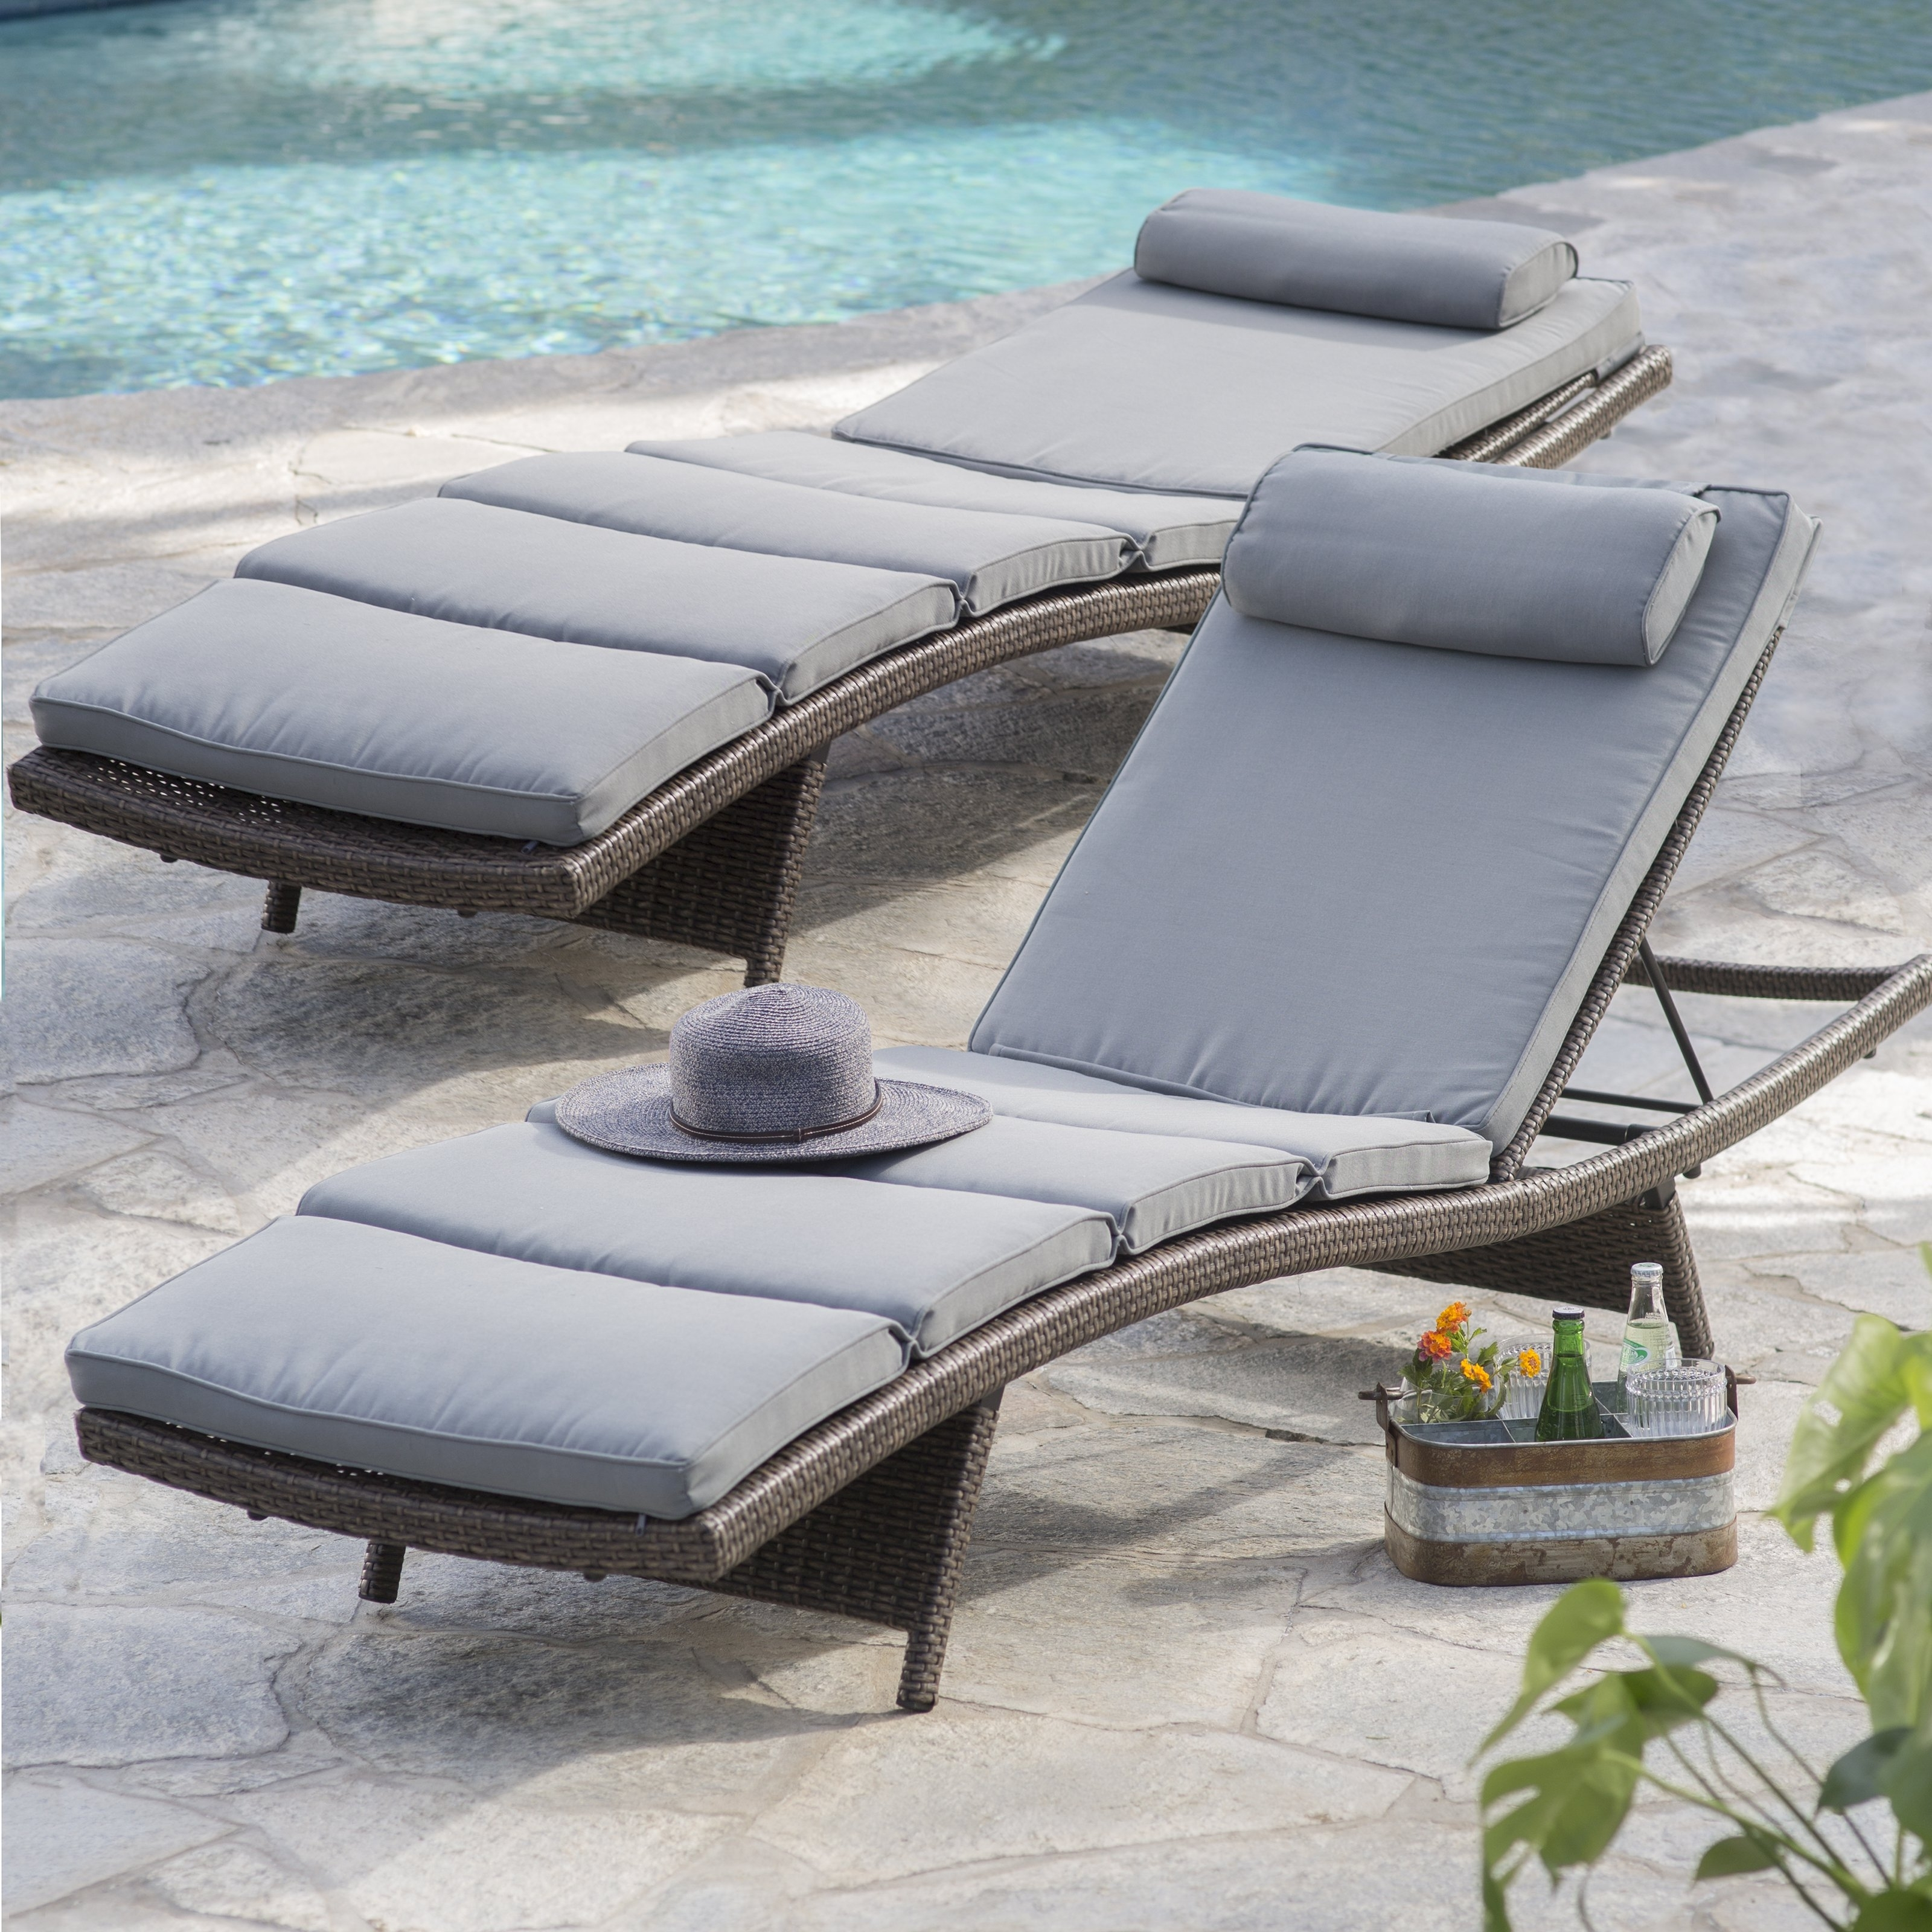 Popular Coral Coast Bellora Acacia Chaise Lounger With Pullout Table In Patio Chaise Lounges (View 10 of 15)